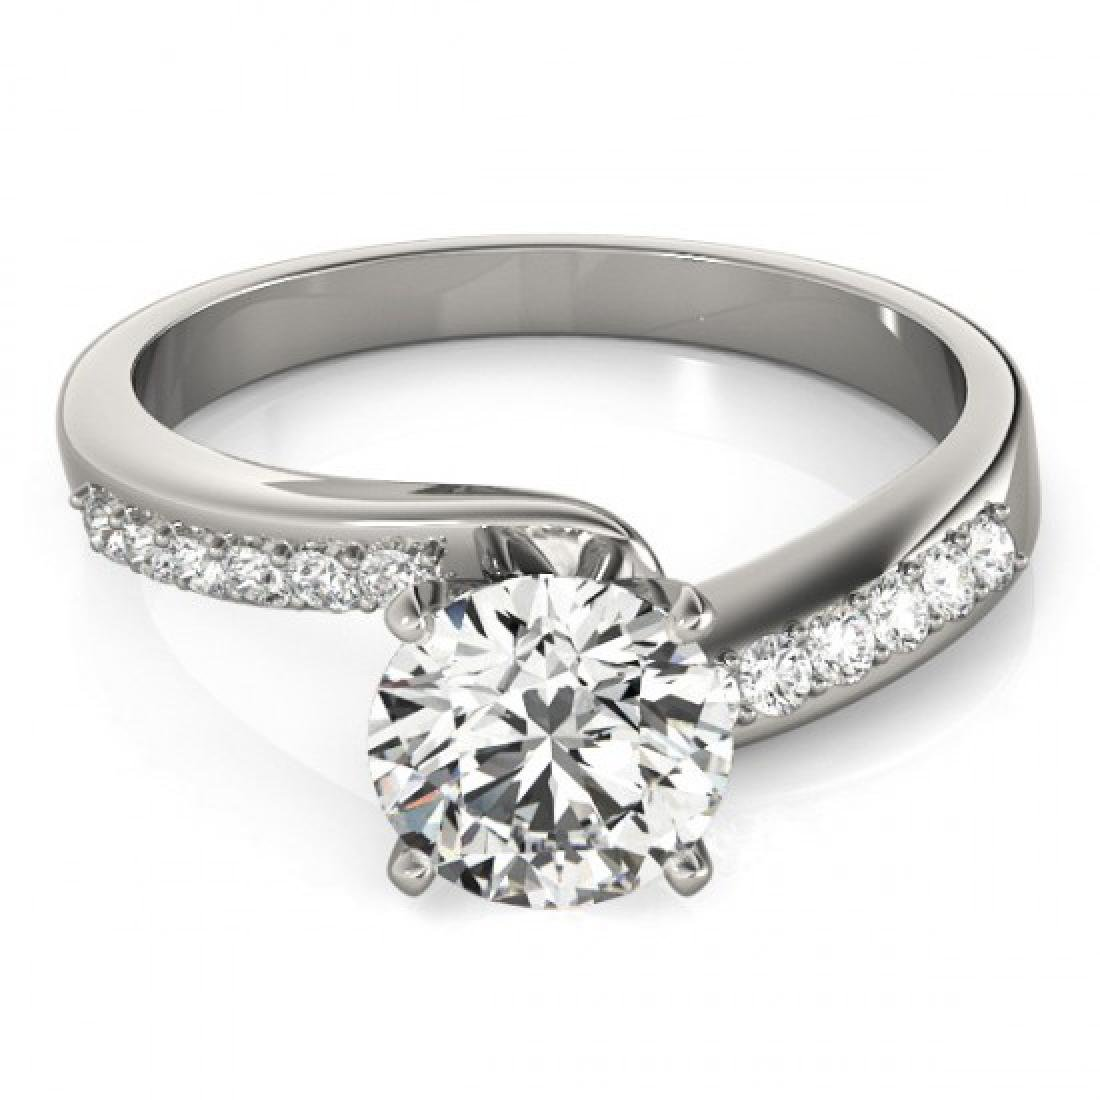 1.15 CTW Certified VS/SI Diamond Bypass Solitaire Ring